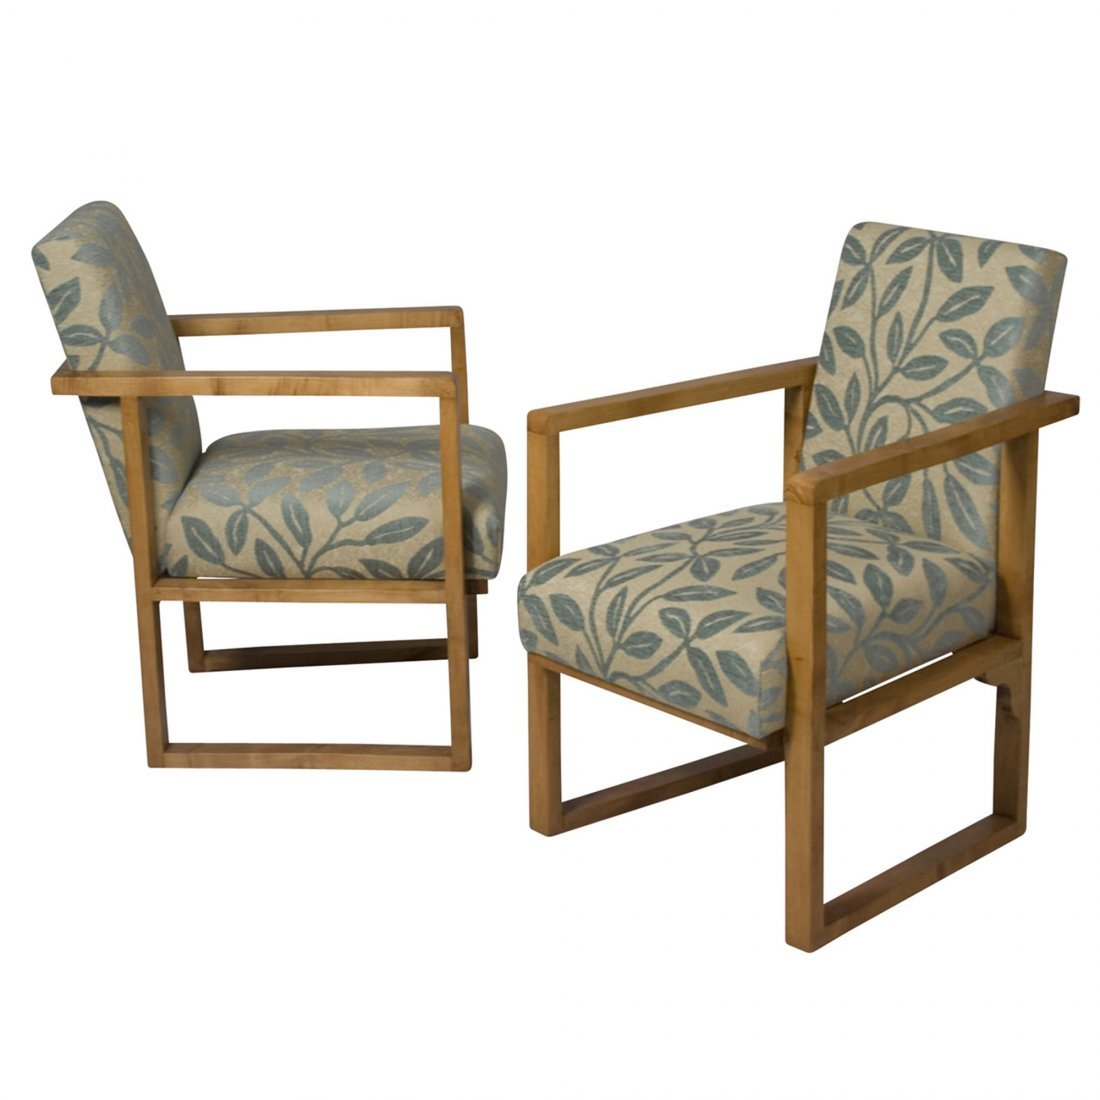 1930s Modernist Armchairs, Pair